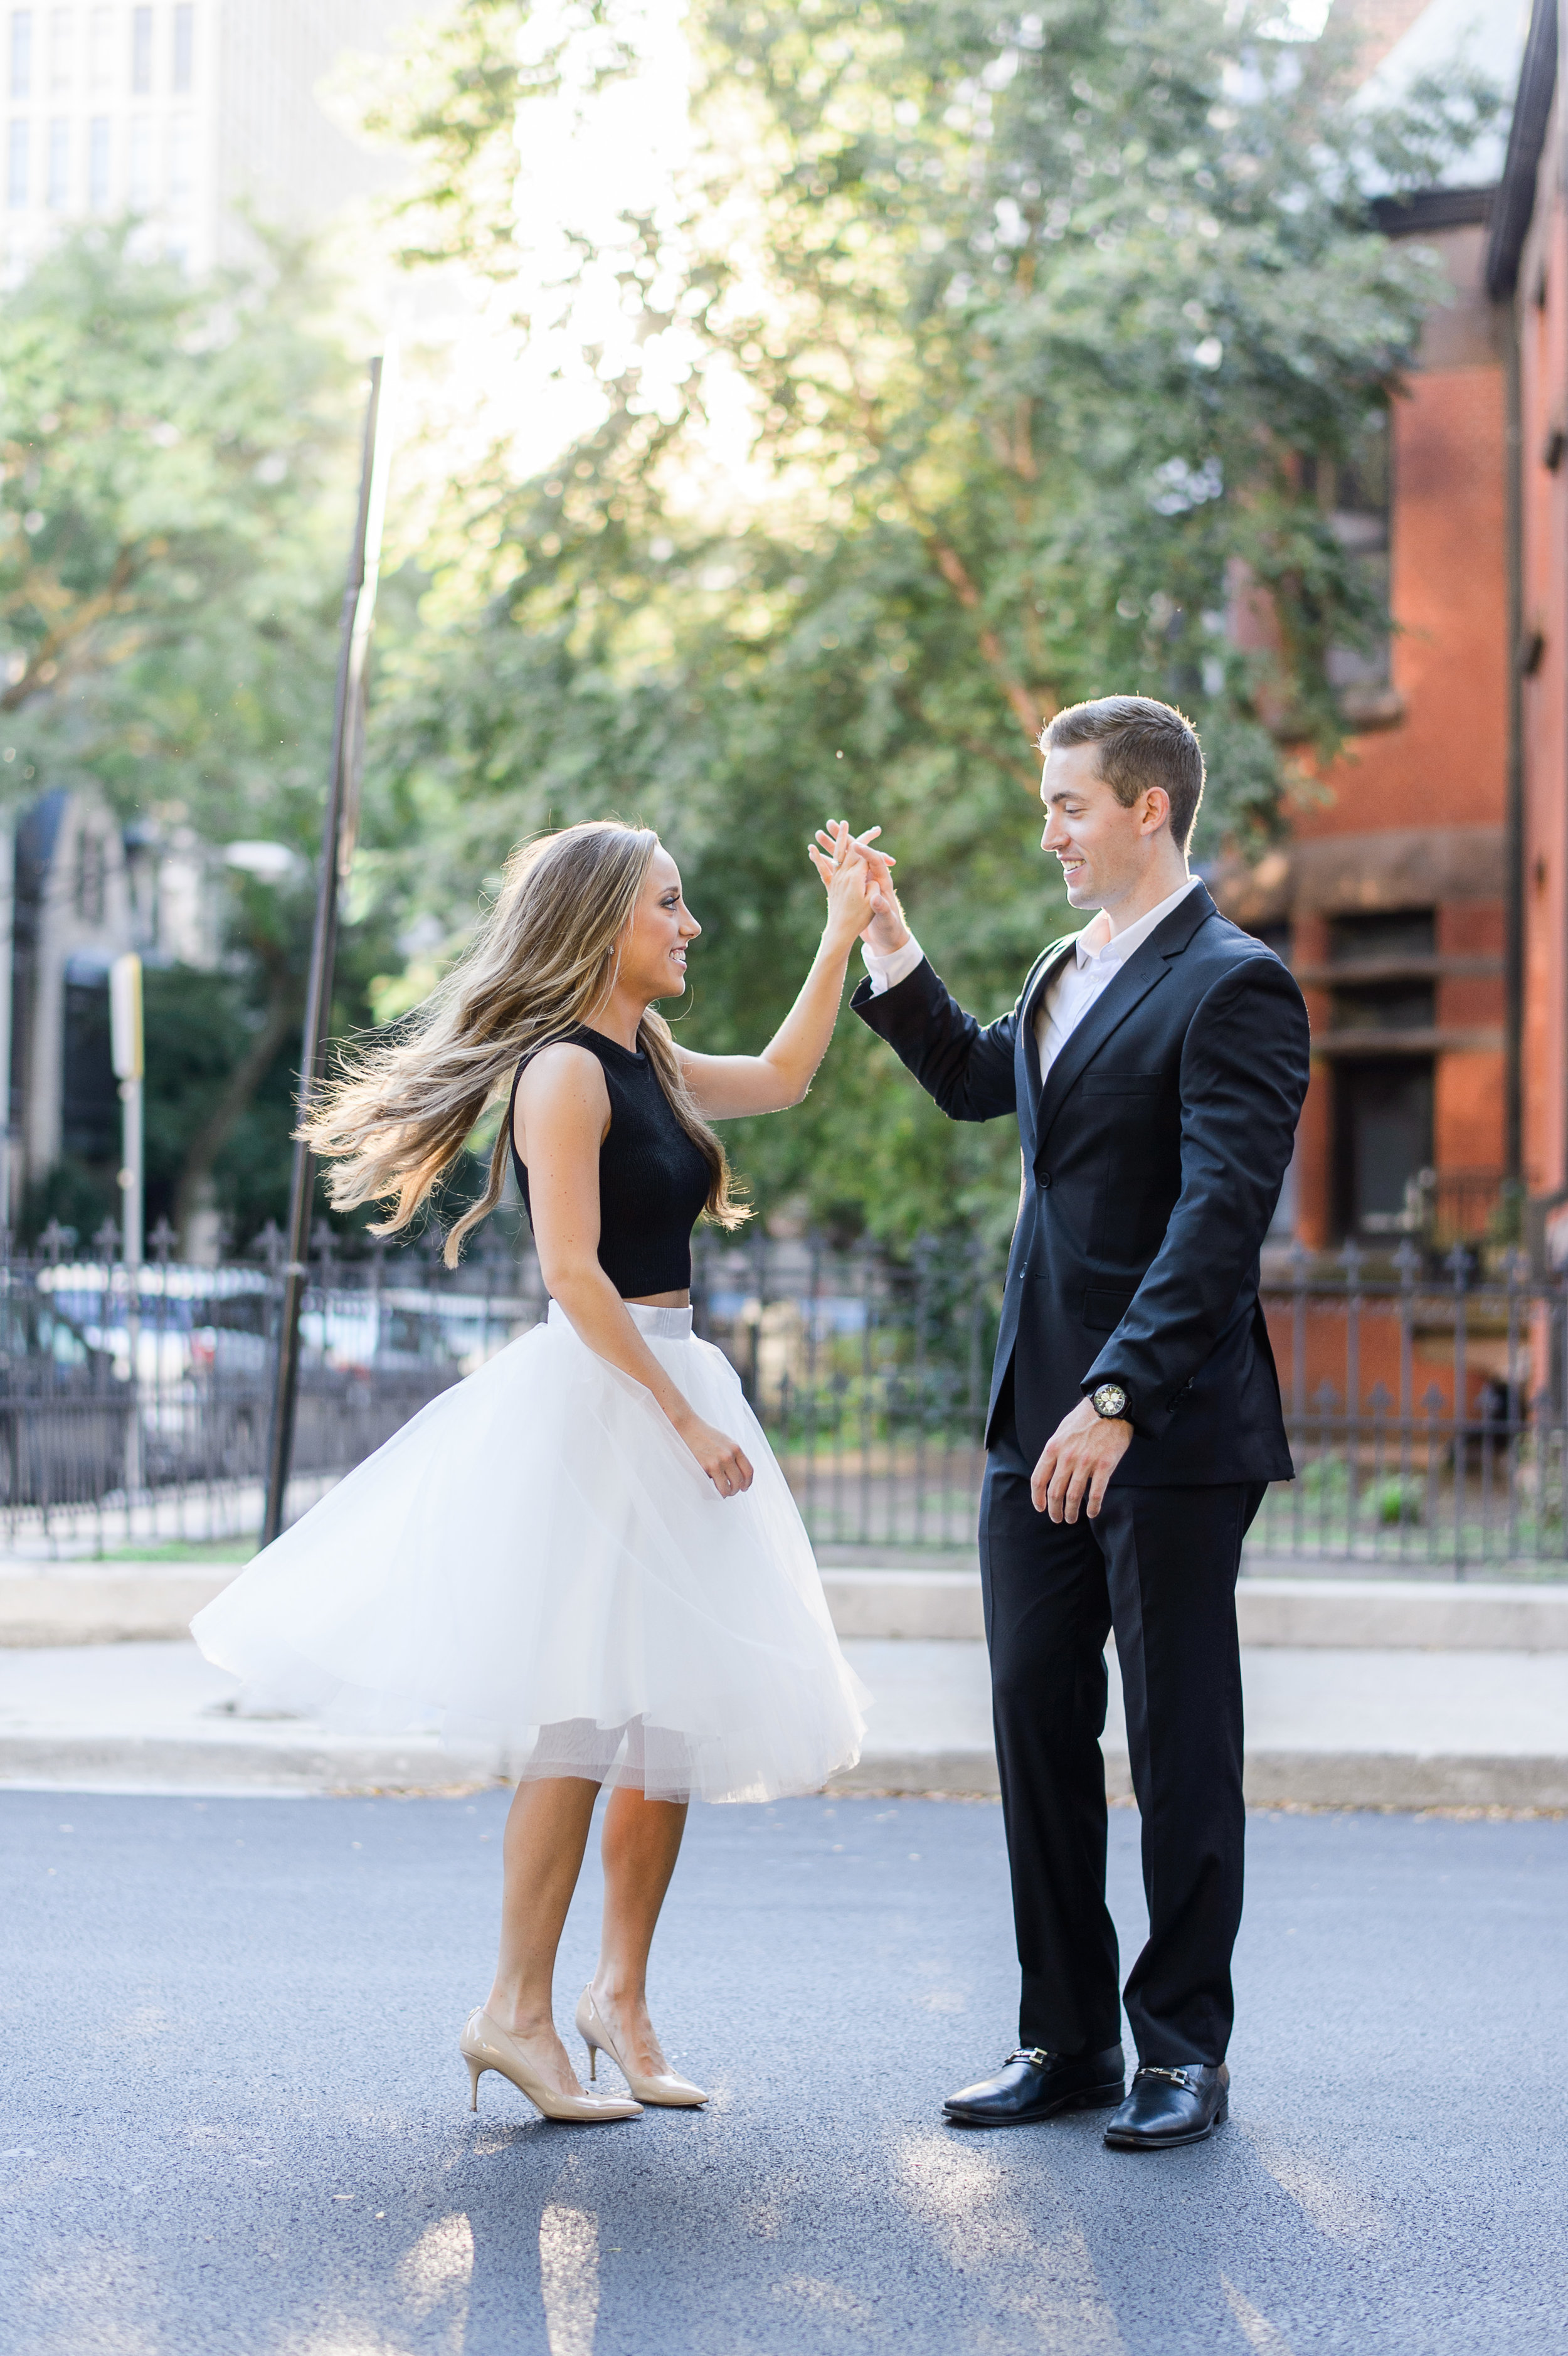 Ben and Ailie's engagement photos are so dreamy and magical! I just loved the twirling shots of Ailie's tulle skirt!